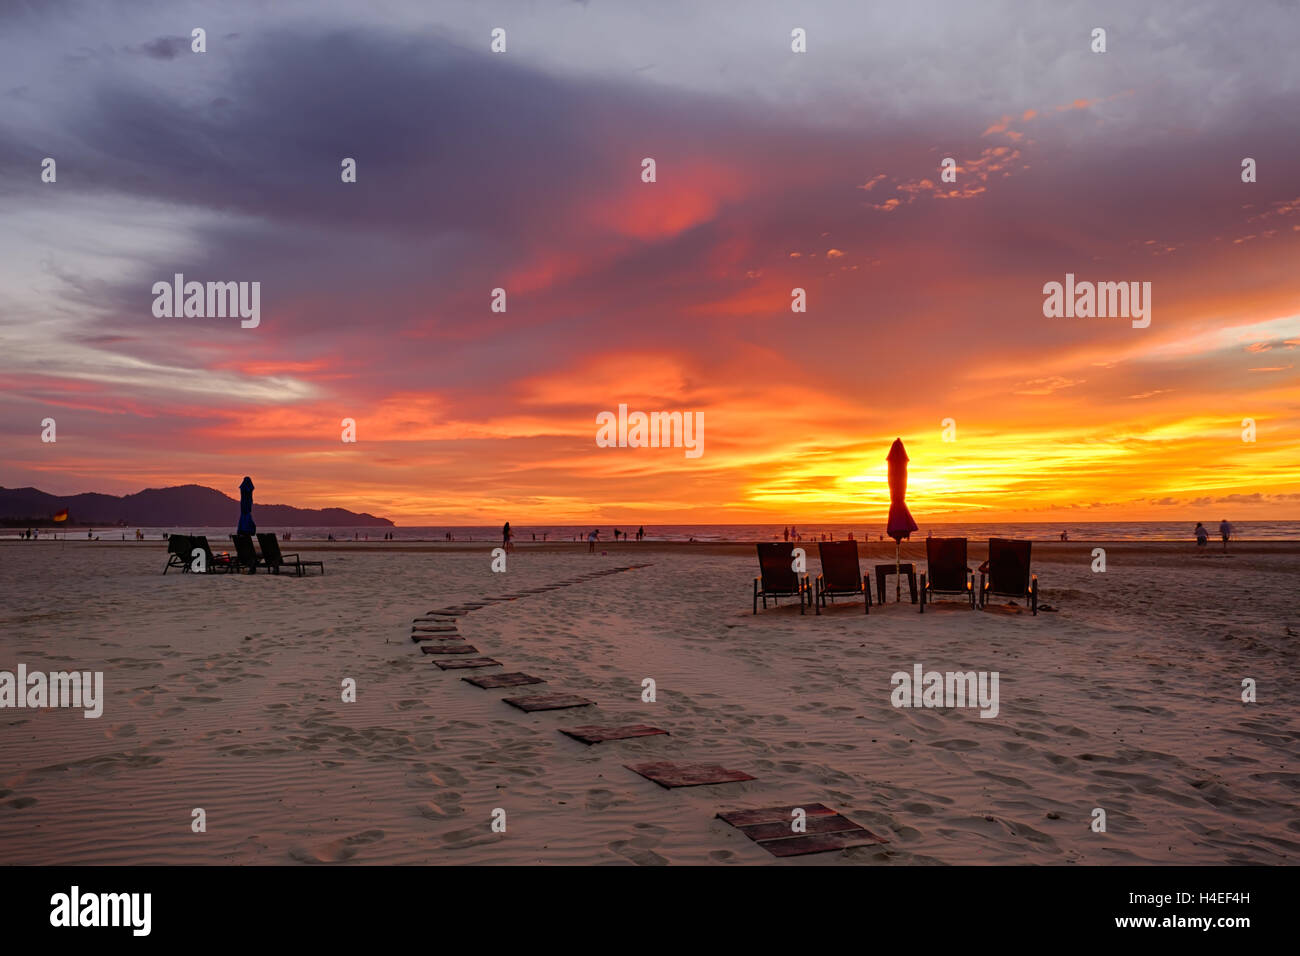 Sunset View on a Beach Facing South China Sea - Stock Image